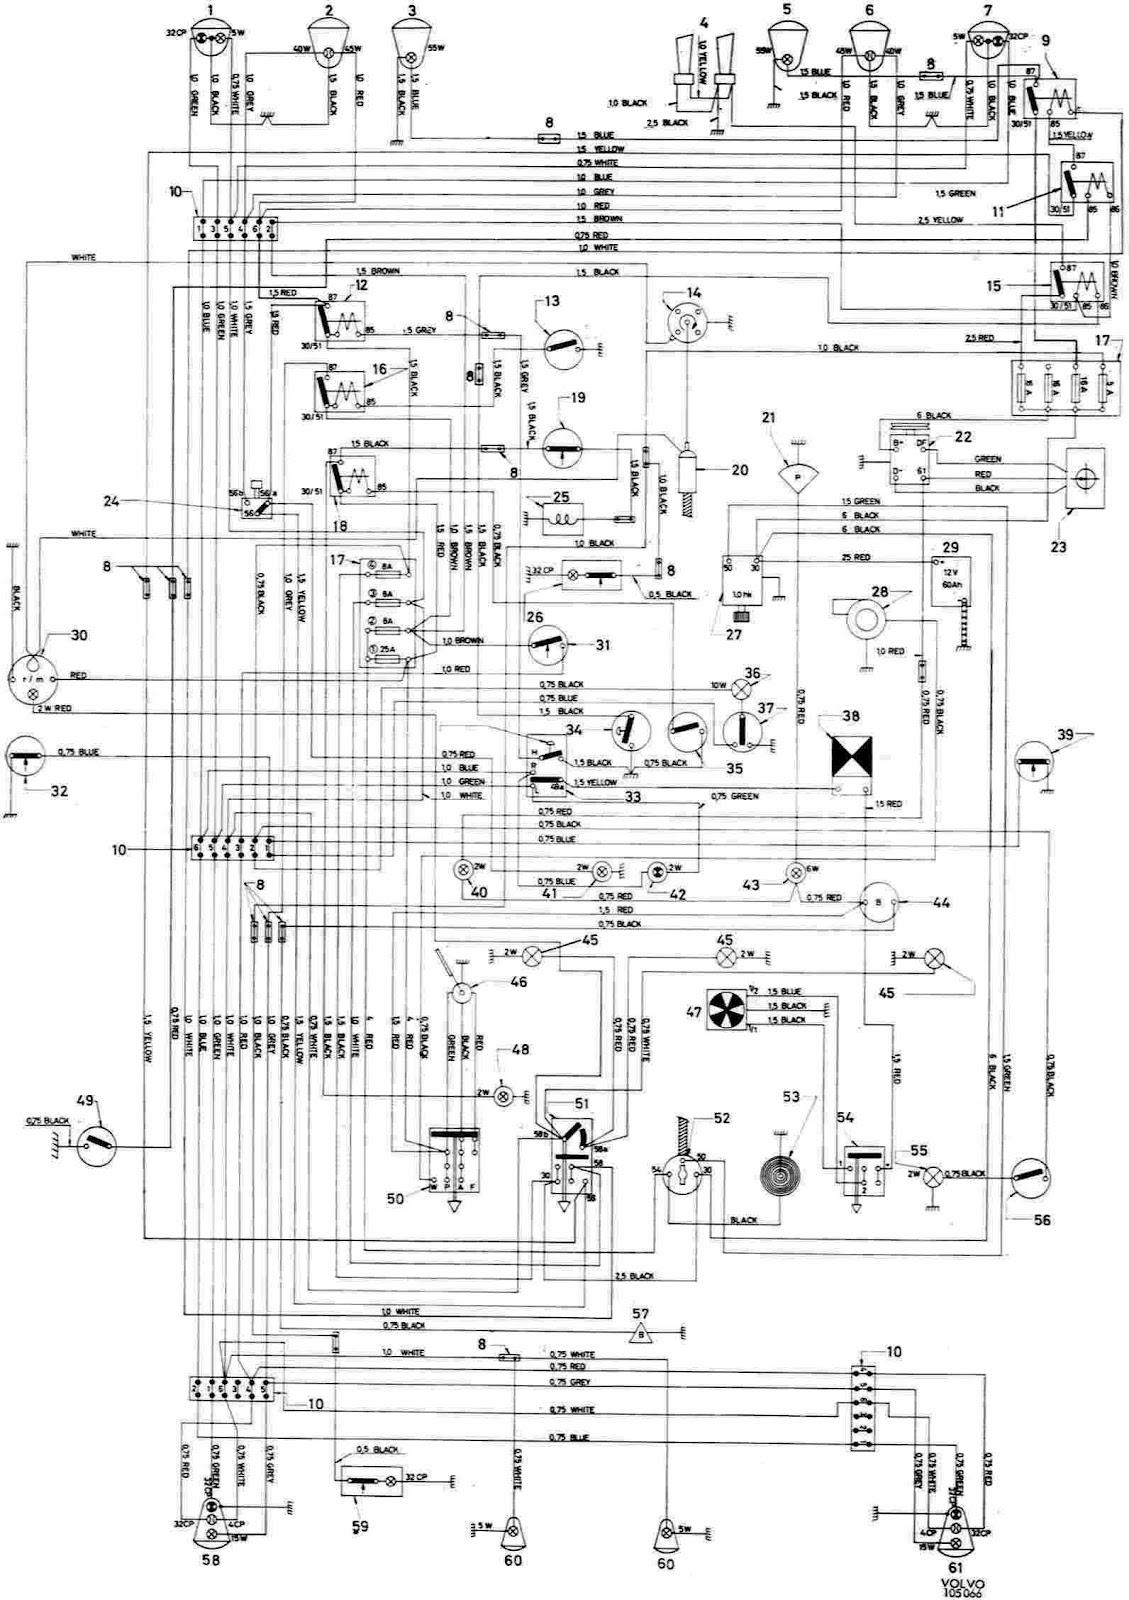 small resolution of  volvo 123 gt complete wiring diagram hu 613 wiring diagram smart